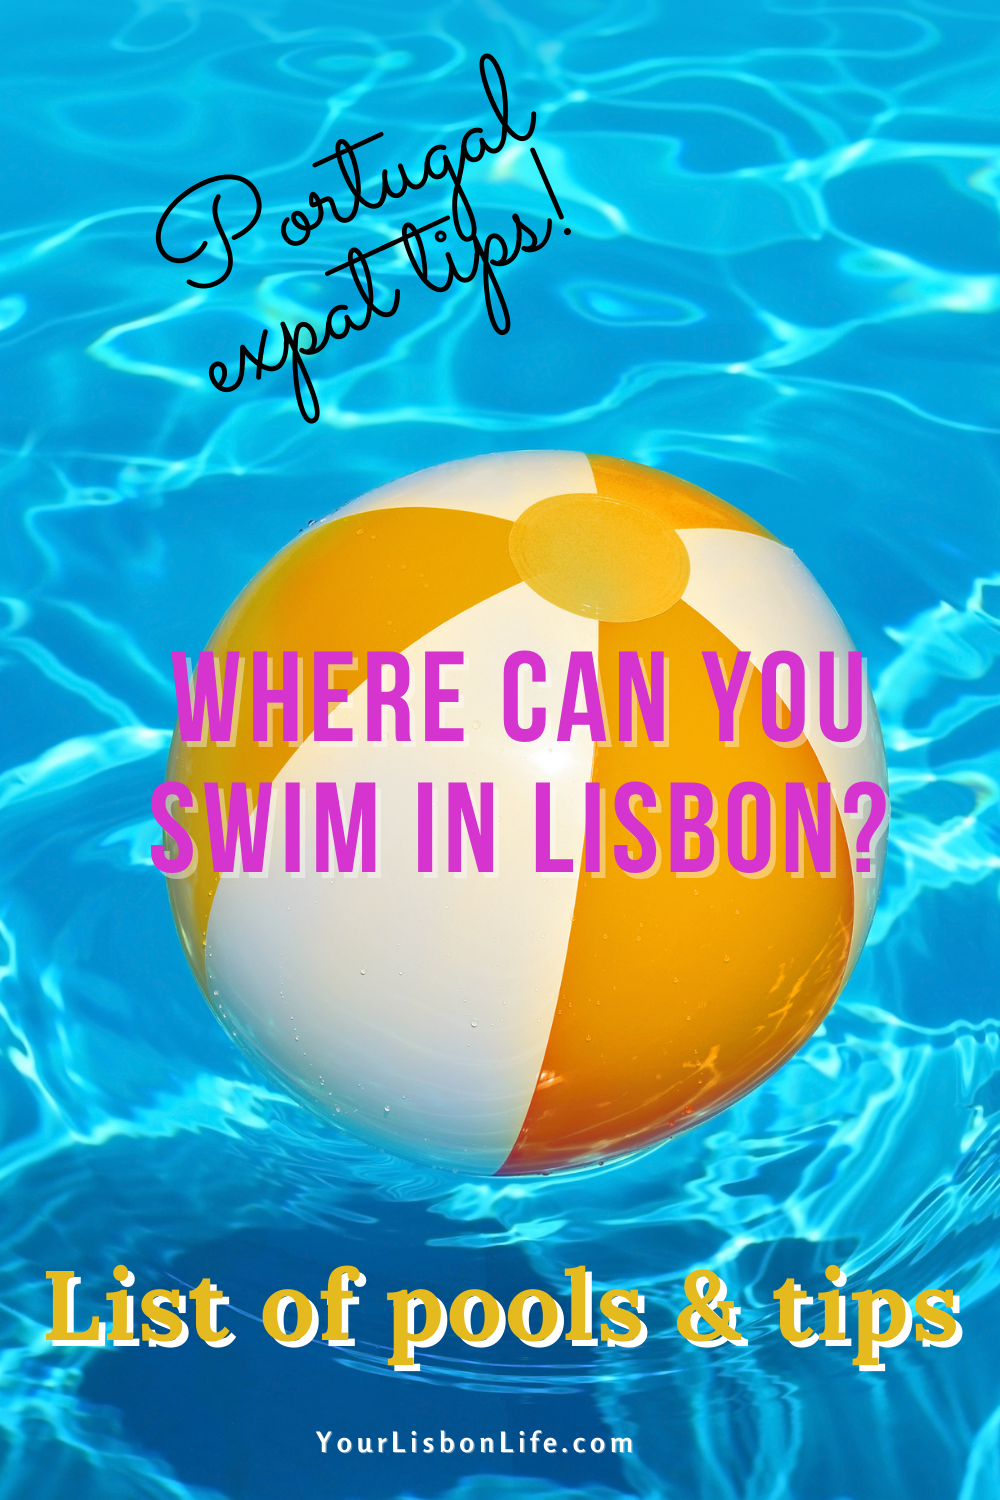 Where Can You Swim in Lisbon: List of pools and ti